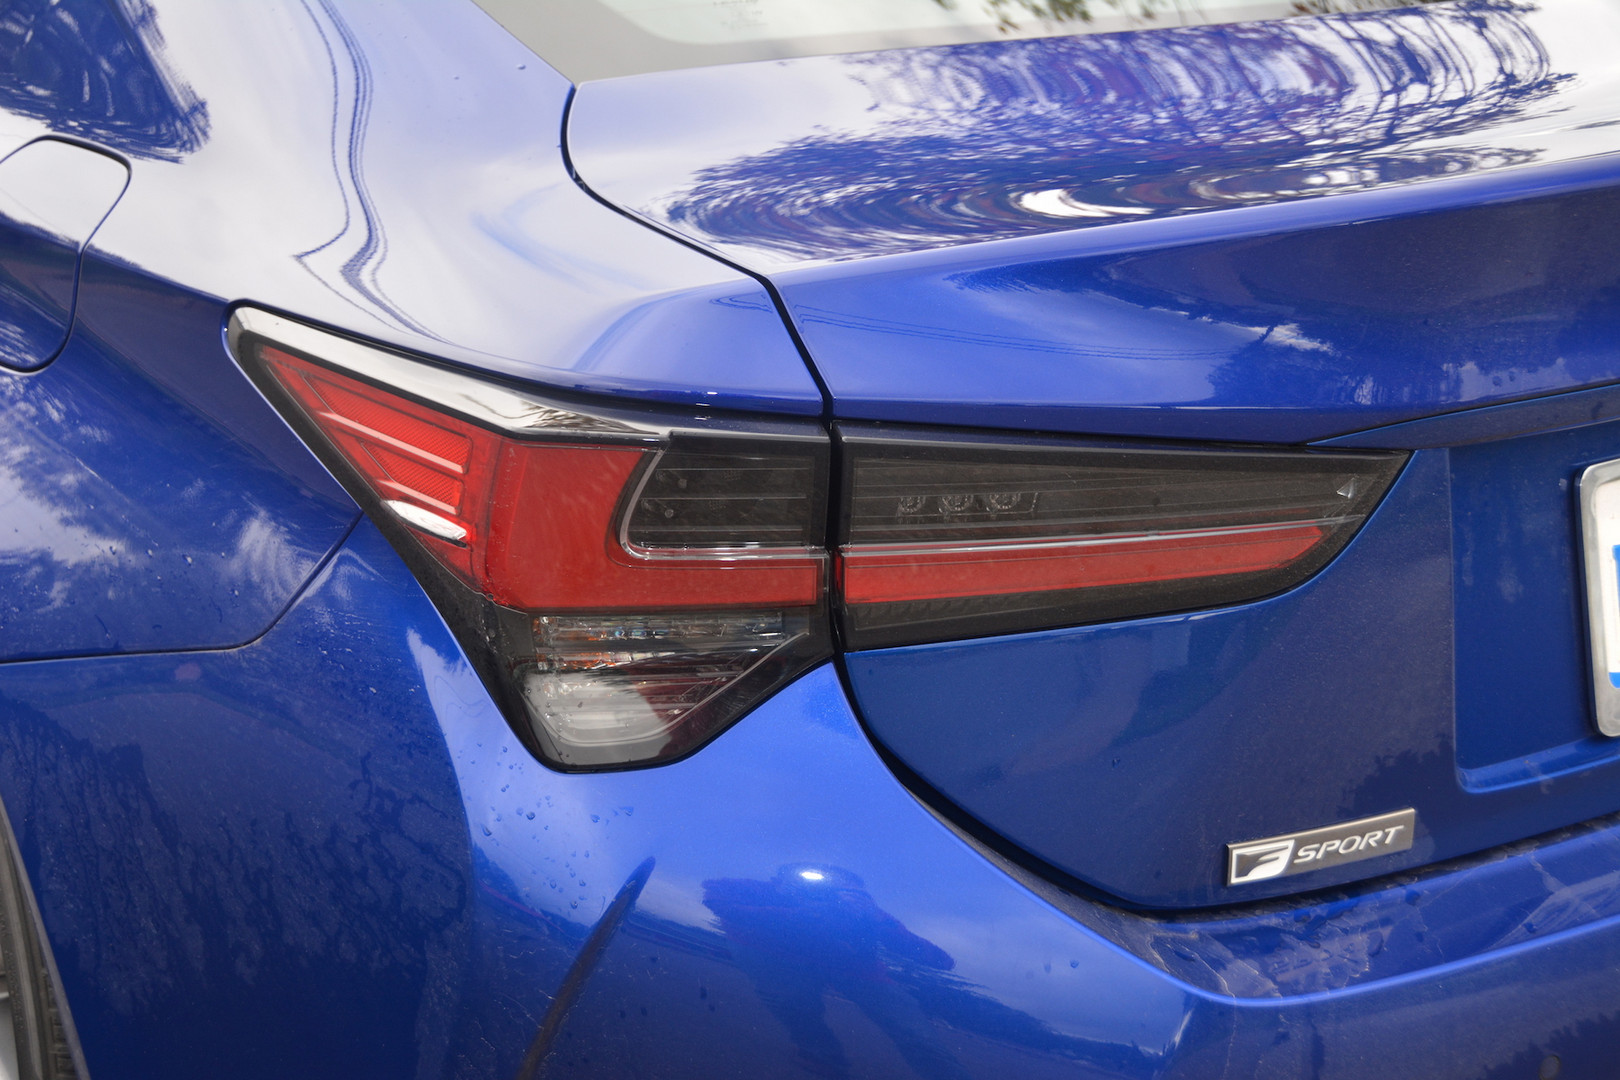 2019 Lexus RC 350 F-Sport Rear Light